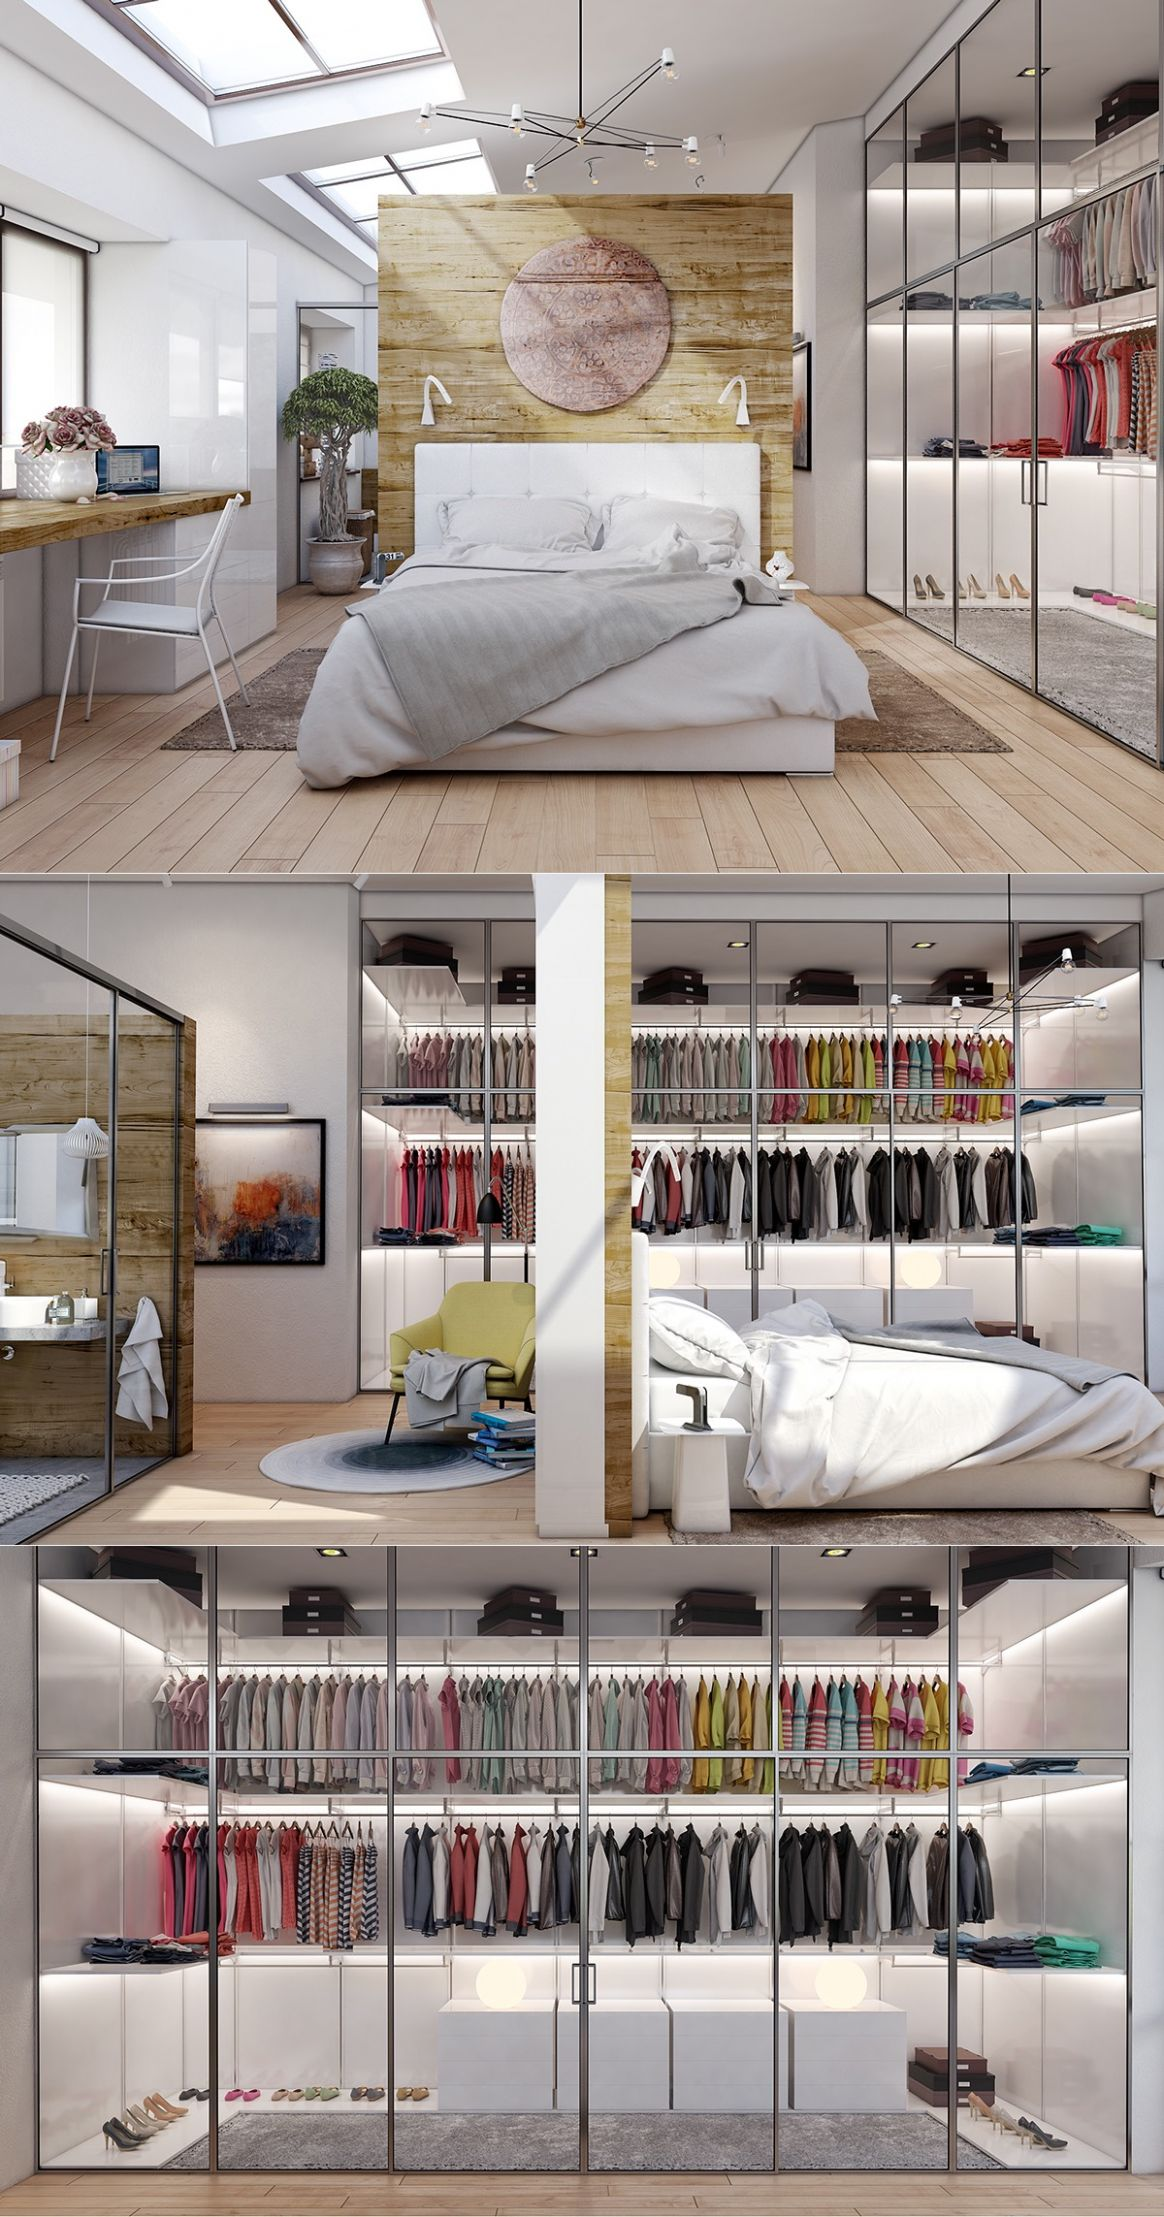 8 Beautiful Examples Of Bedrooms With Attached Wardrobes - house inspiration wardrobe